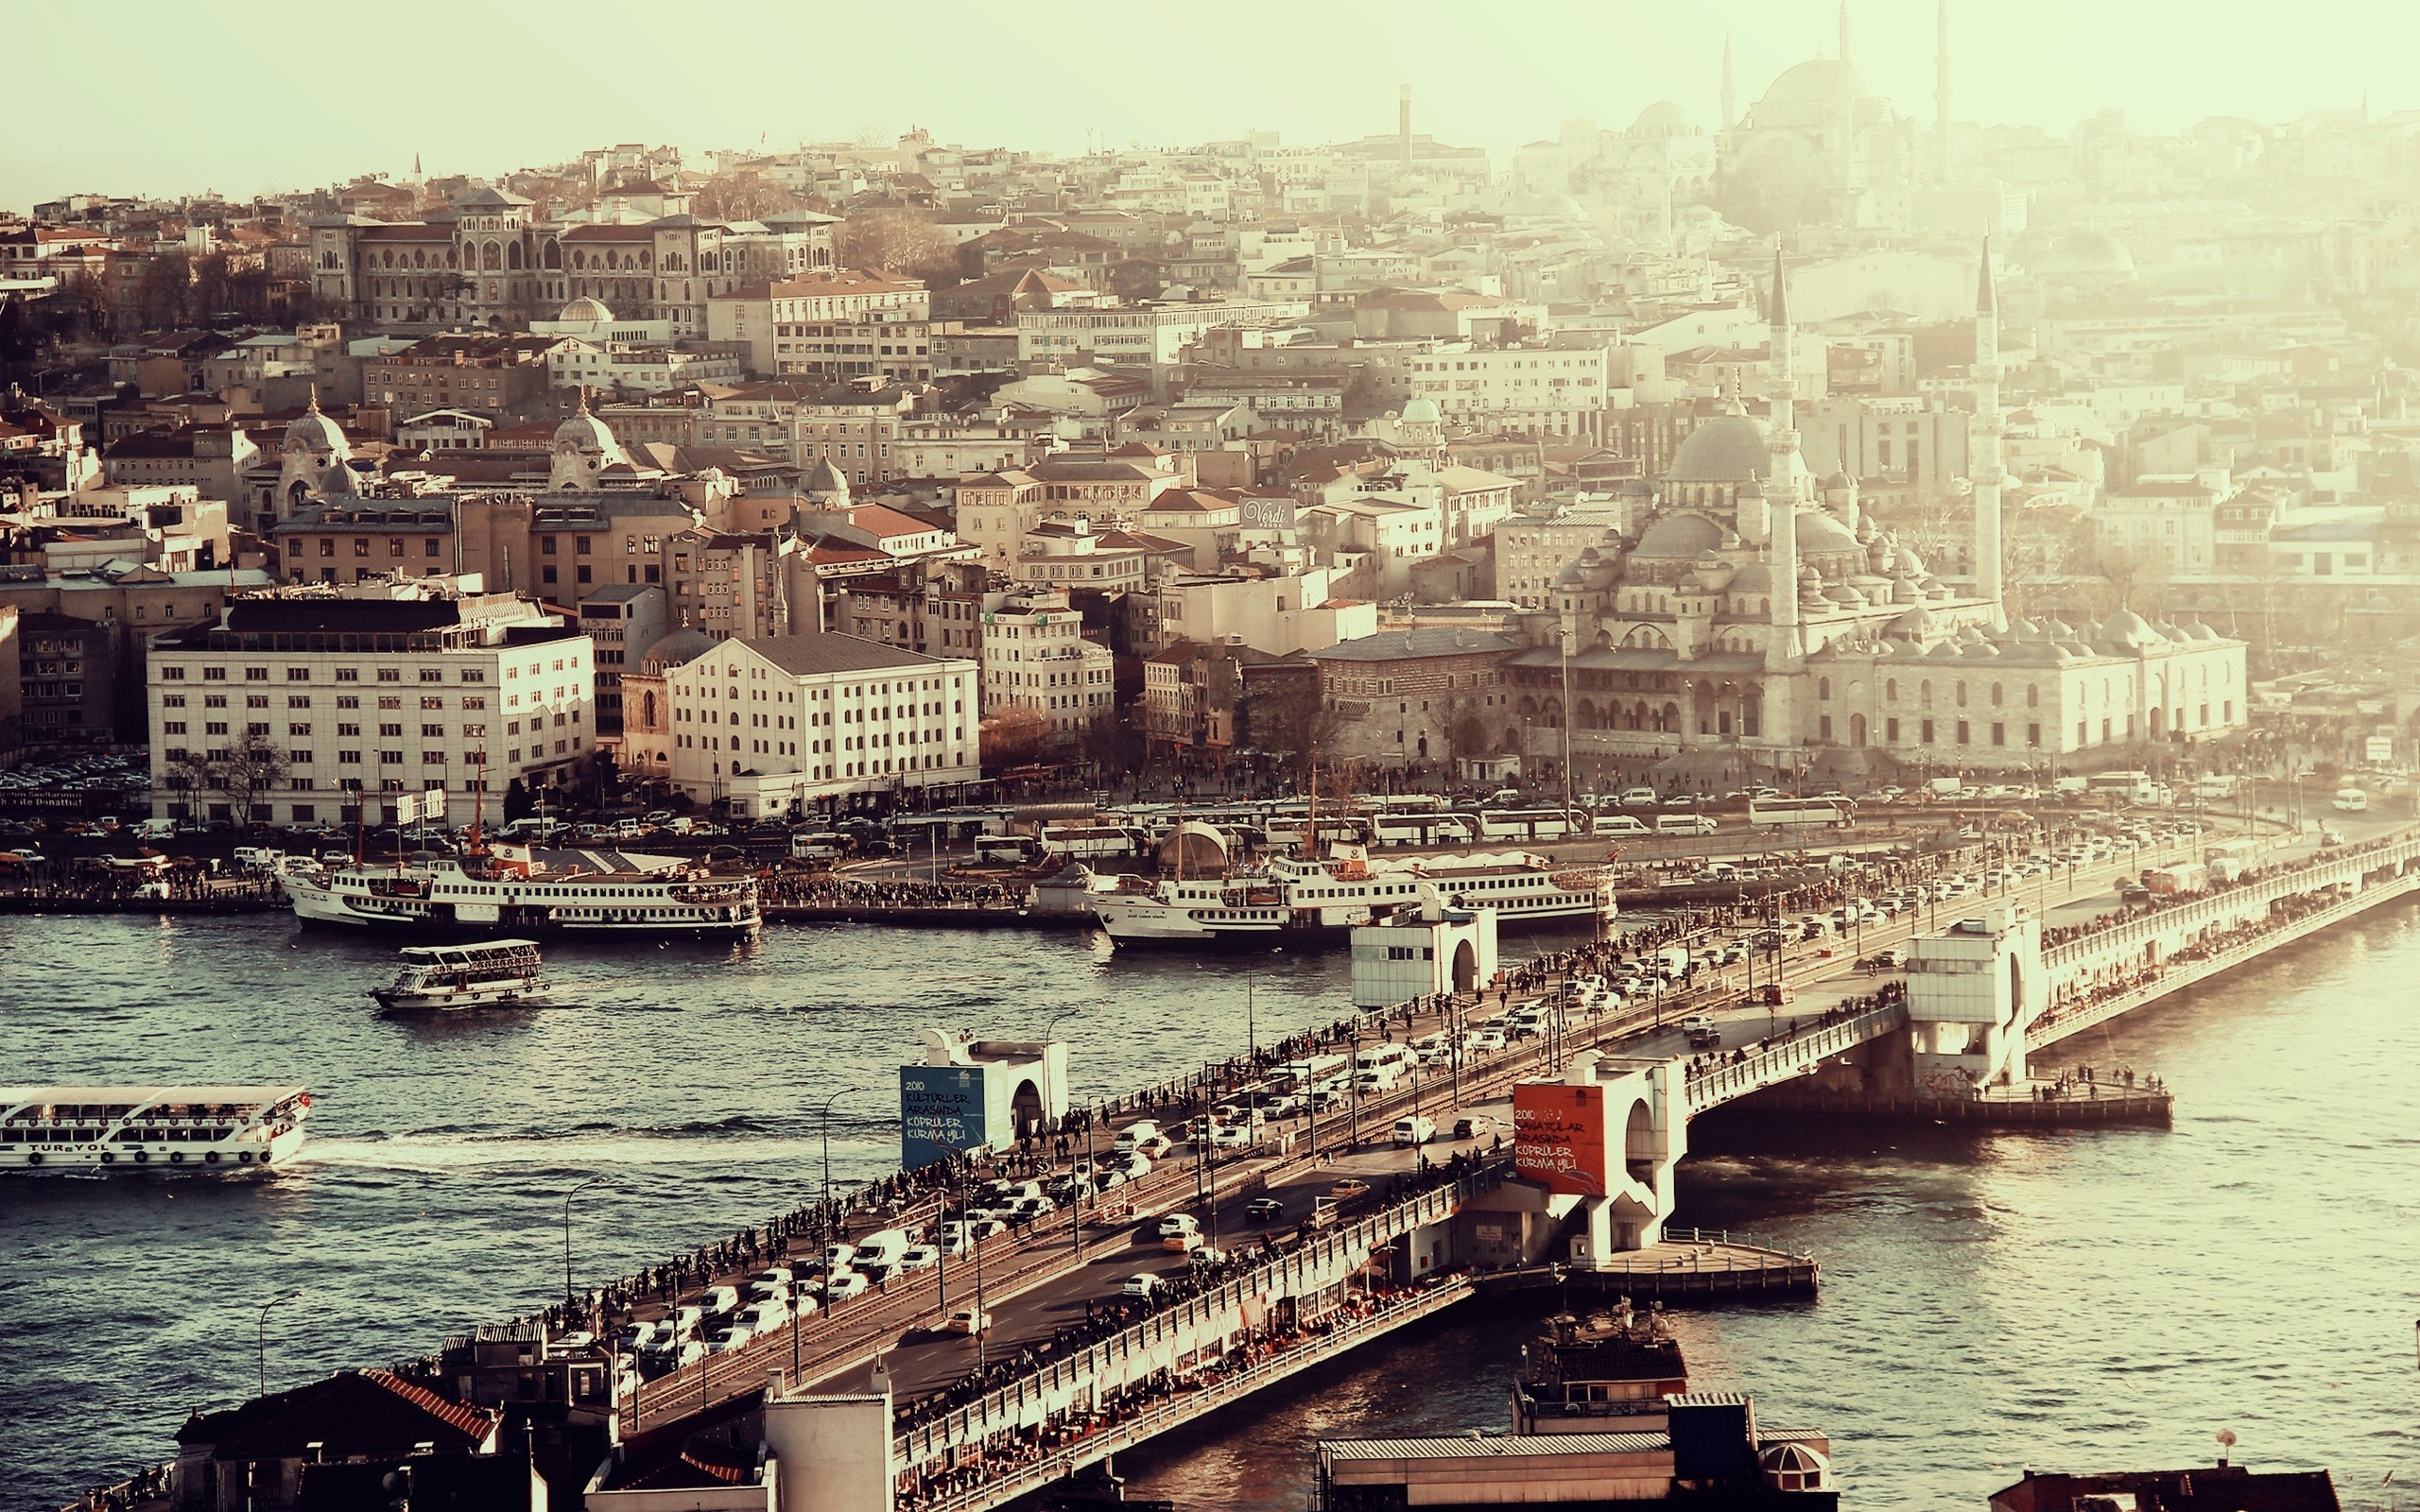 Res: 2560x1600, High Definiton Wallpapers in the Nature Background named as Istanbul, Turkey  Wallpapers in 4K are listed above. We have found some of the best wallpapers  ...